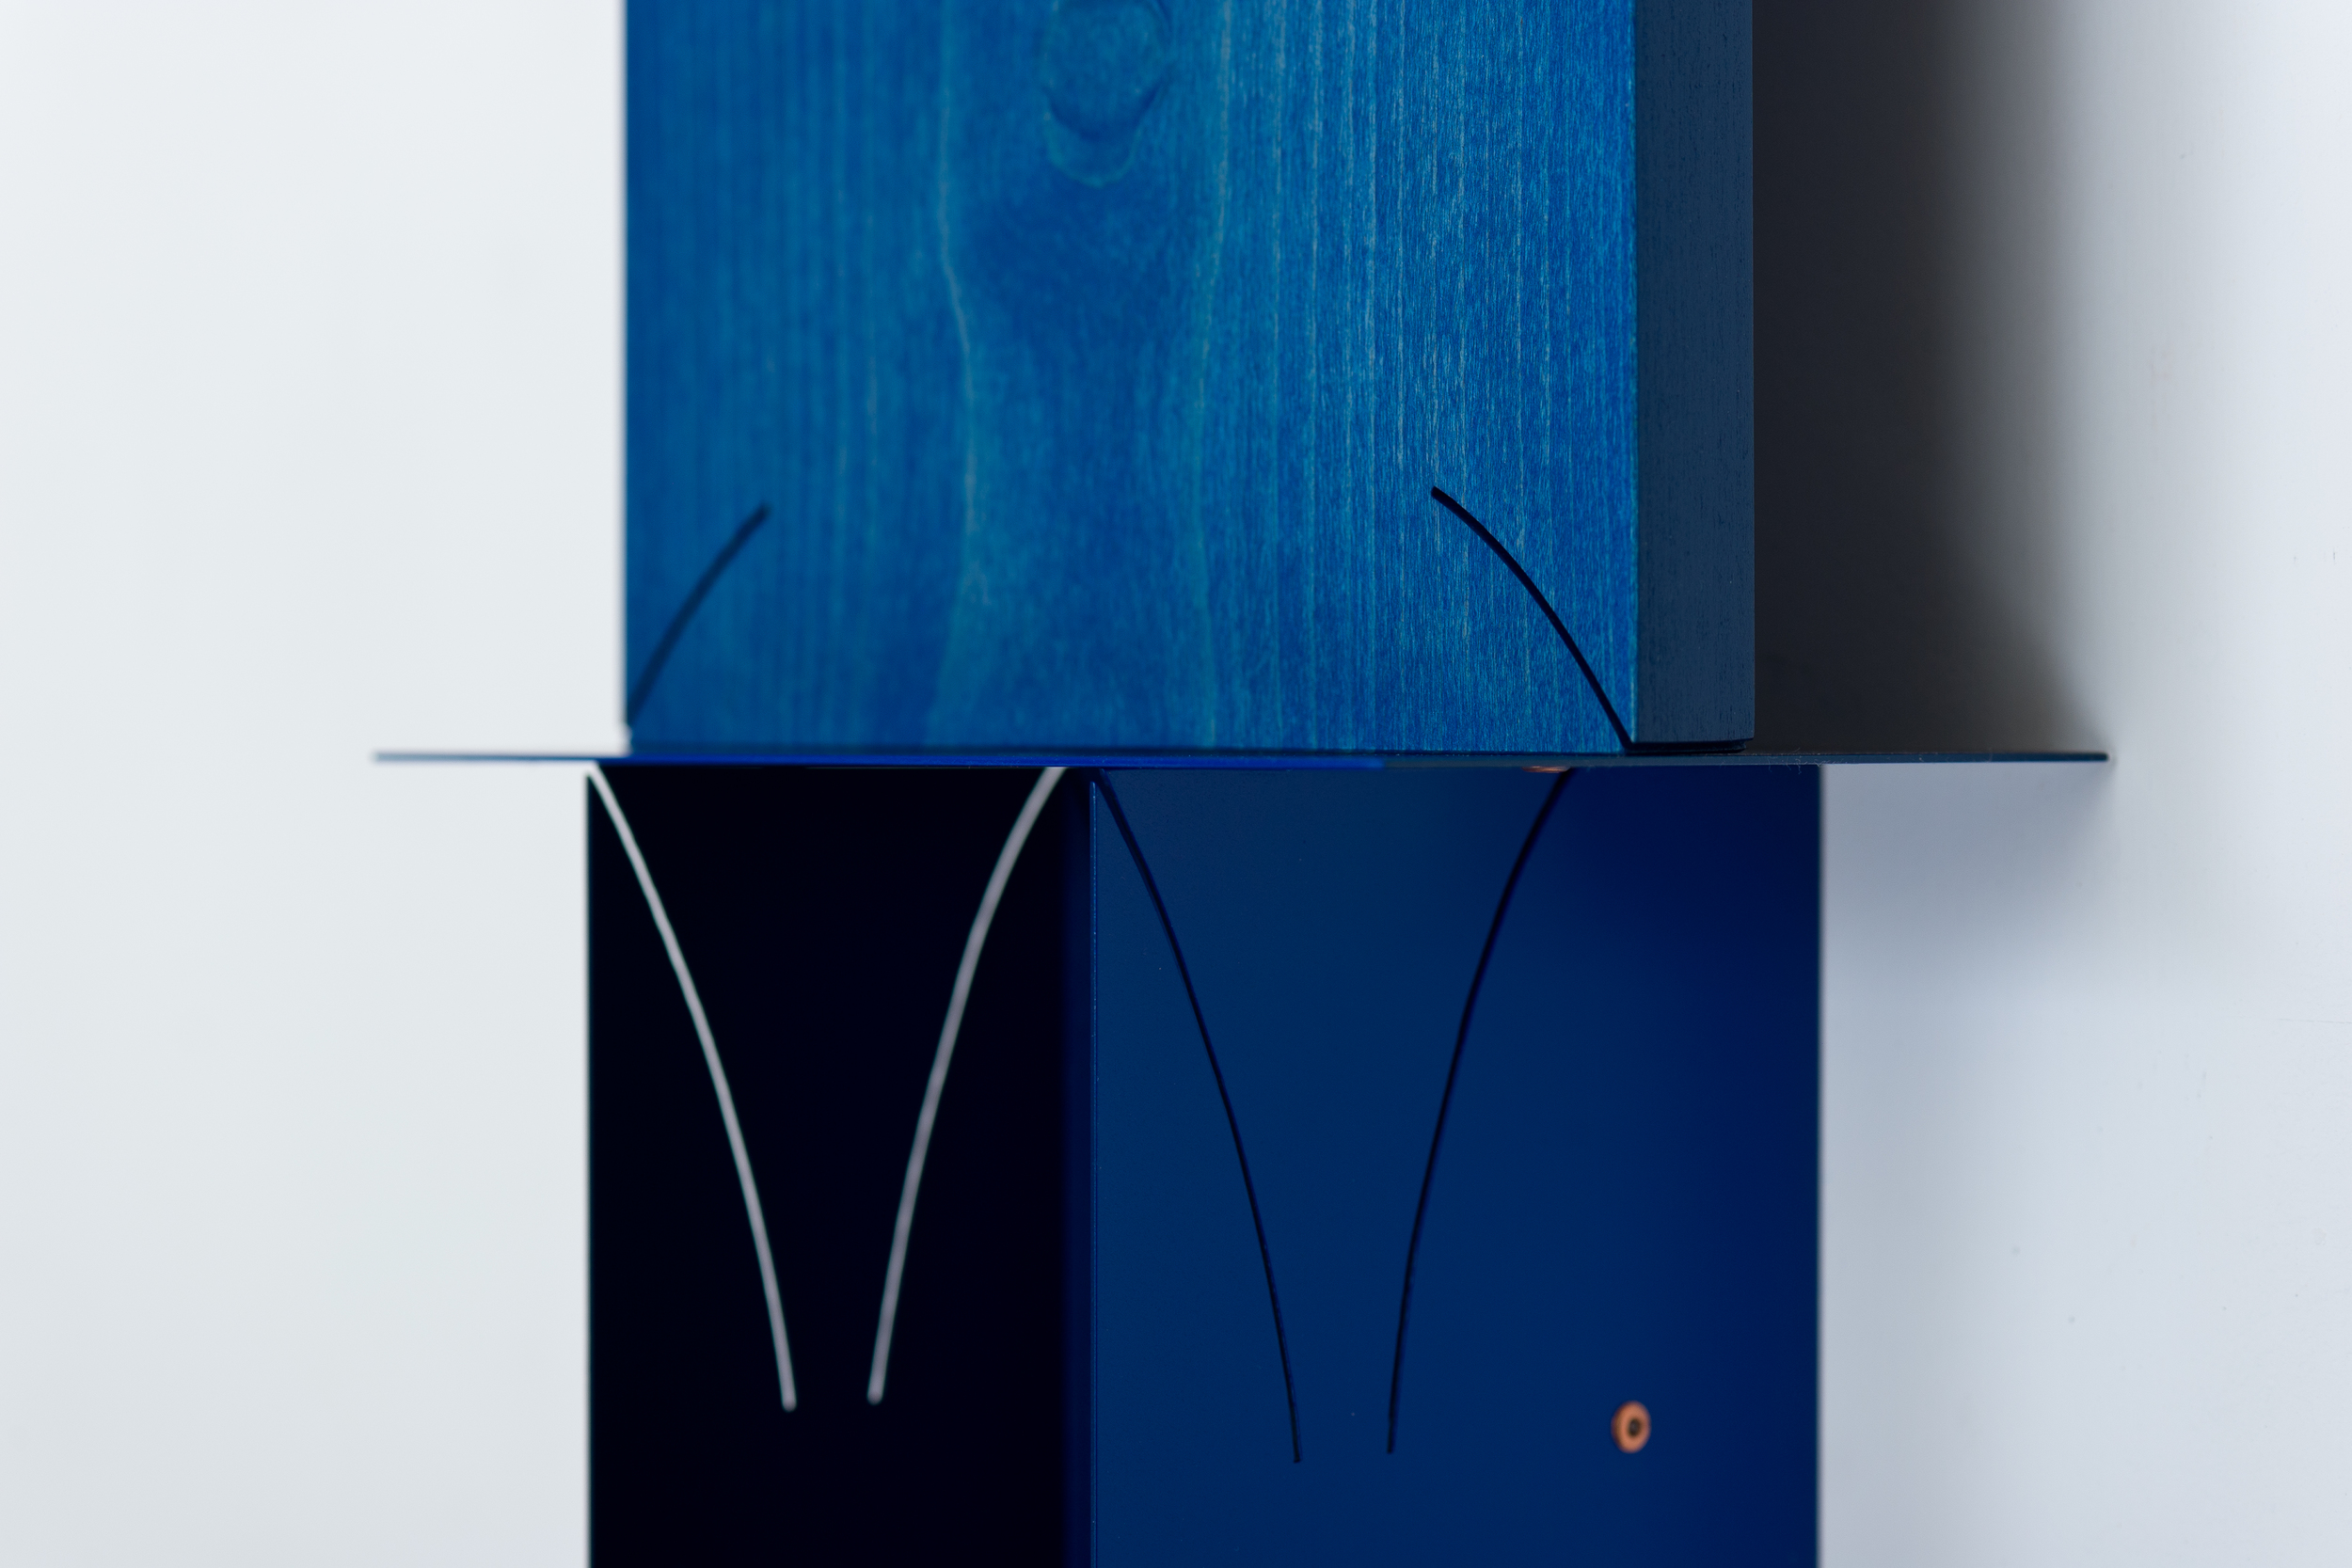 Stacked Plaques (Navy) 2014 Euro-Beech hardwood, steel, copper rivets, enamel, wax 57.6 x 20.3 x 12.7 cm / 22.7 x 8 x 5 in